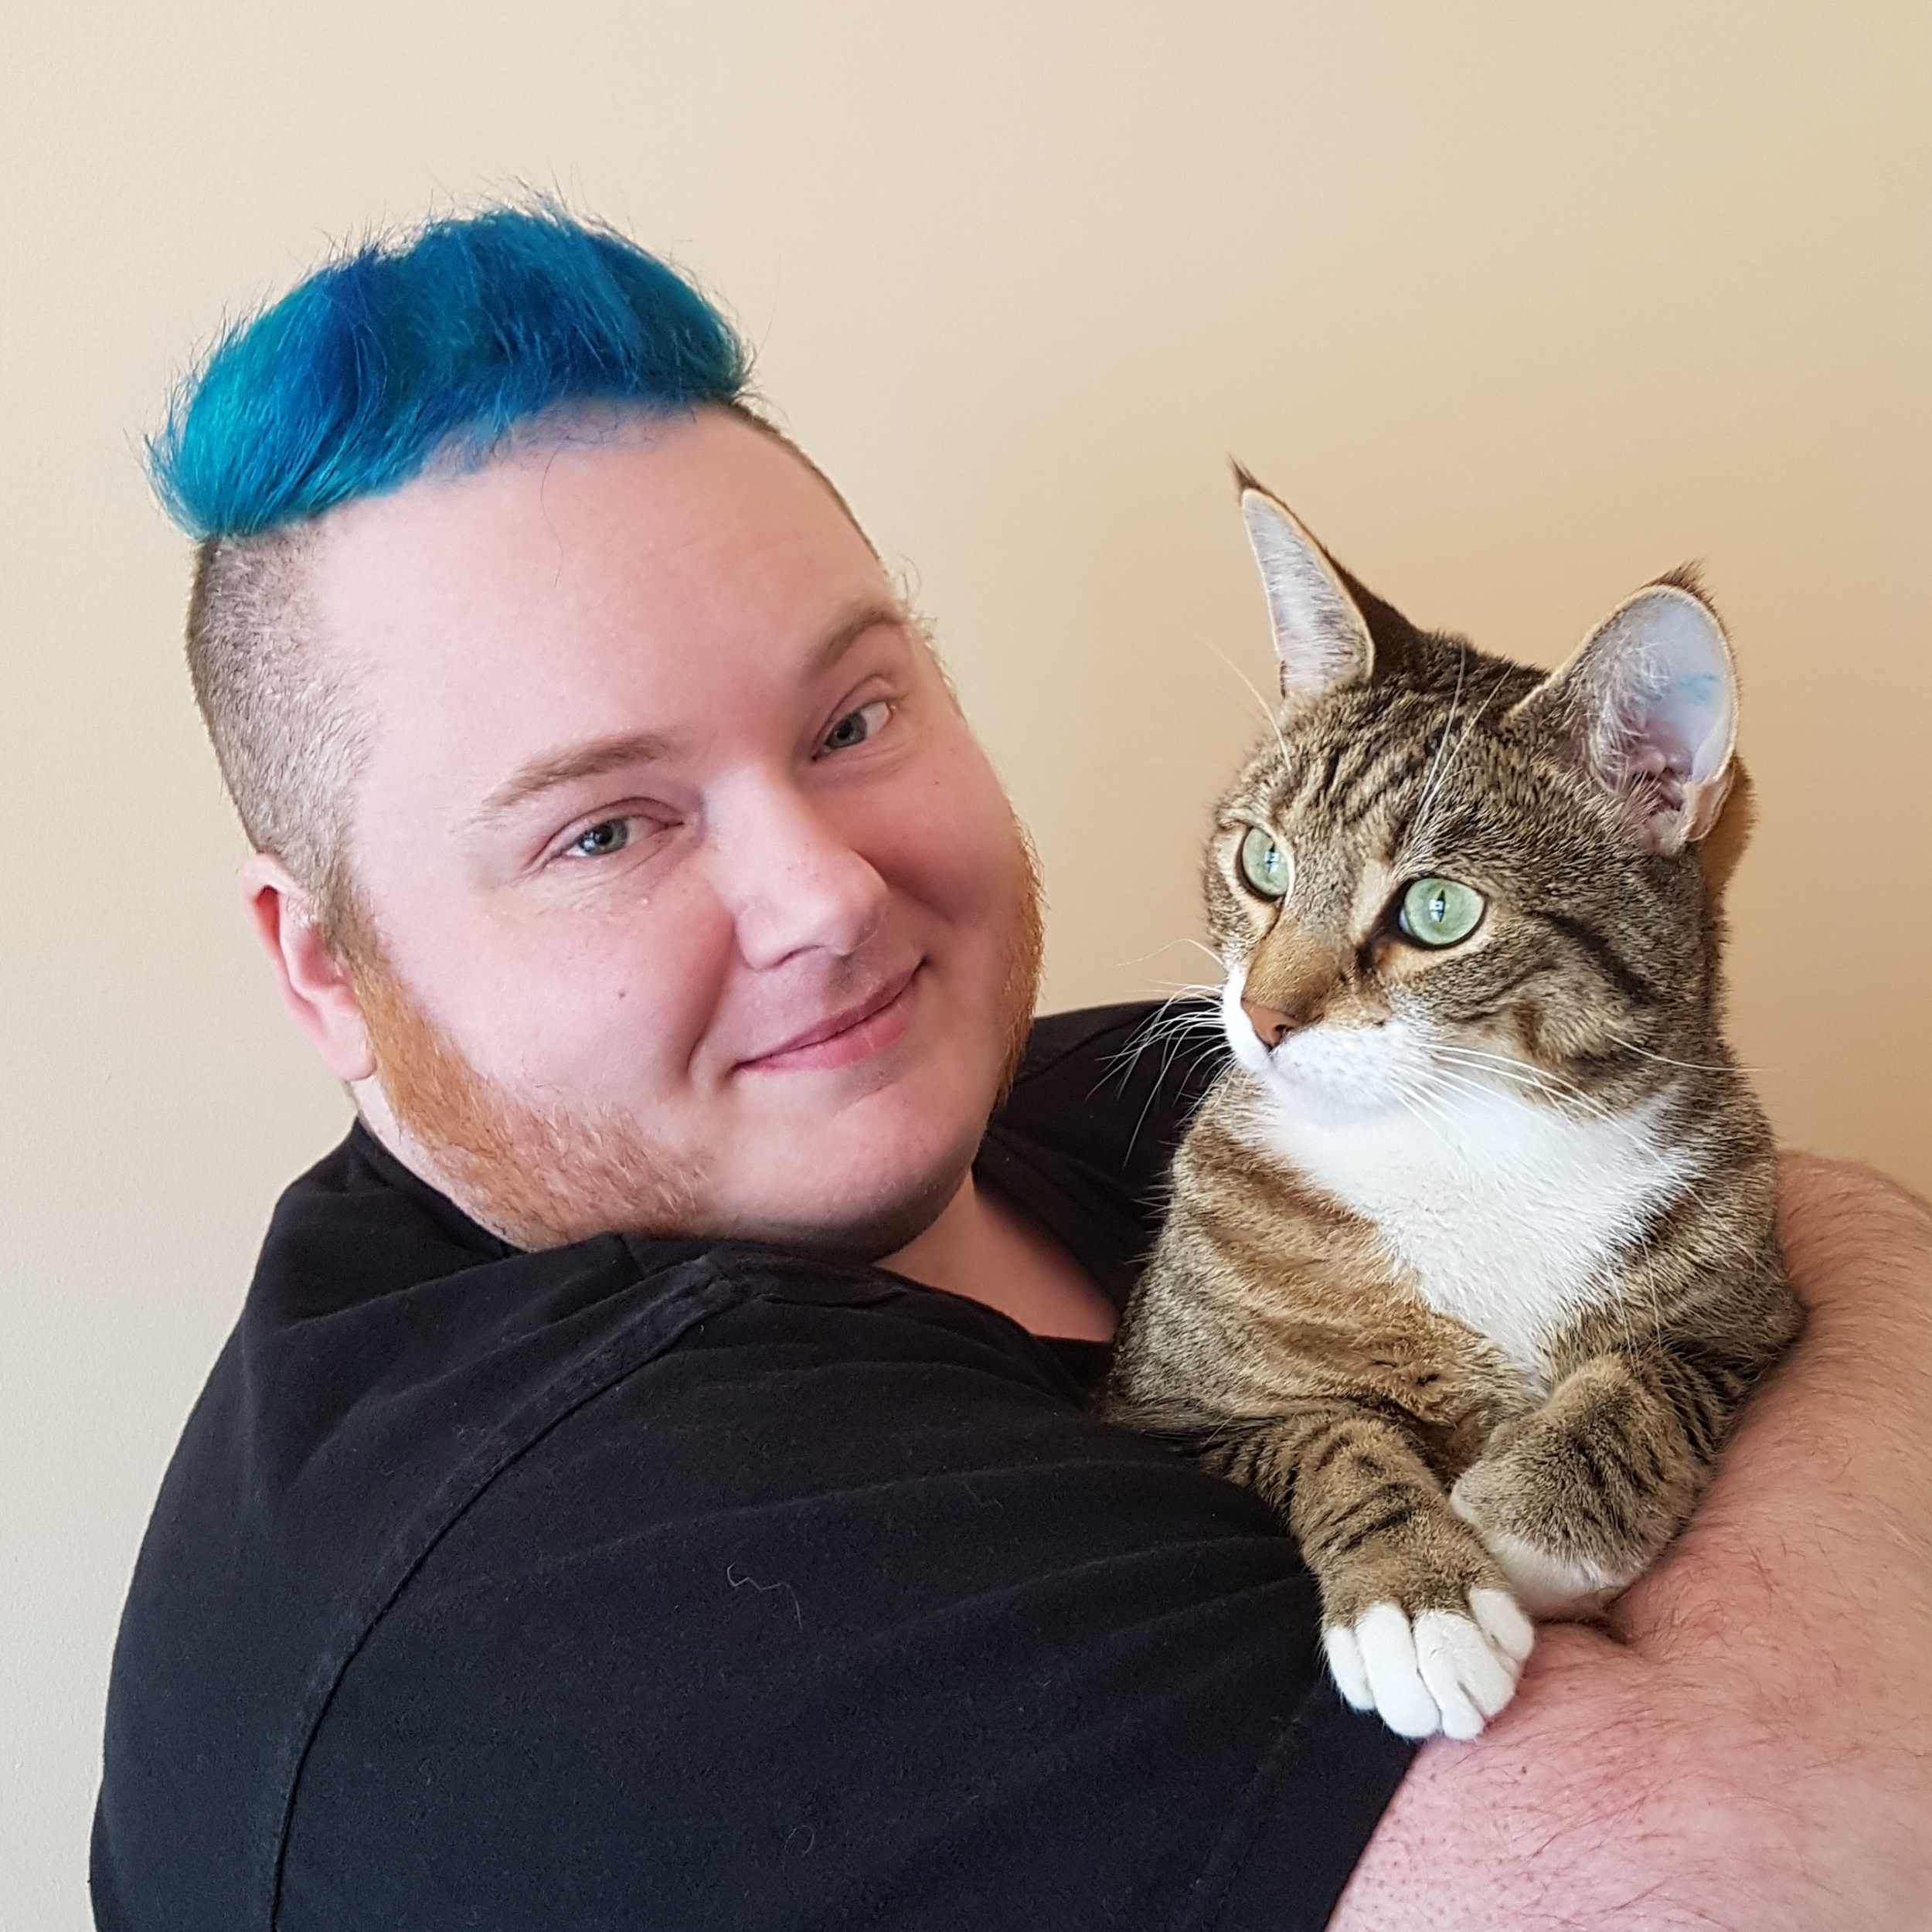 Erin Kyan, with his cat, Boop.